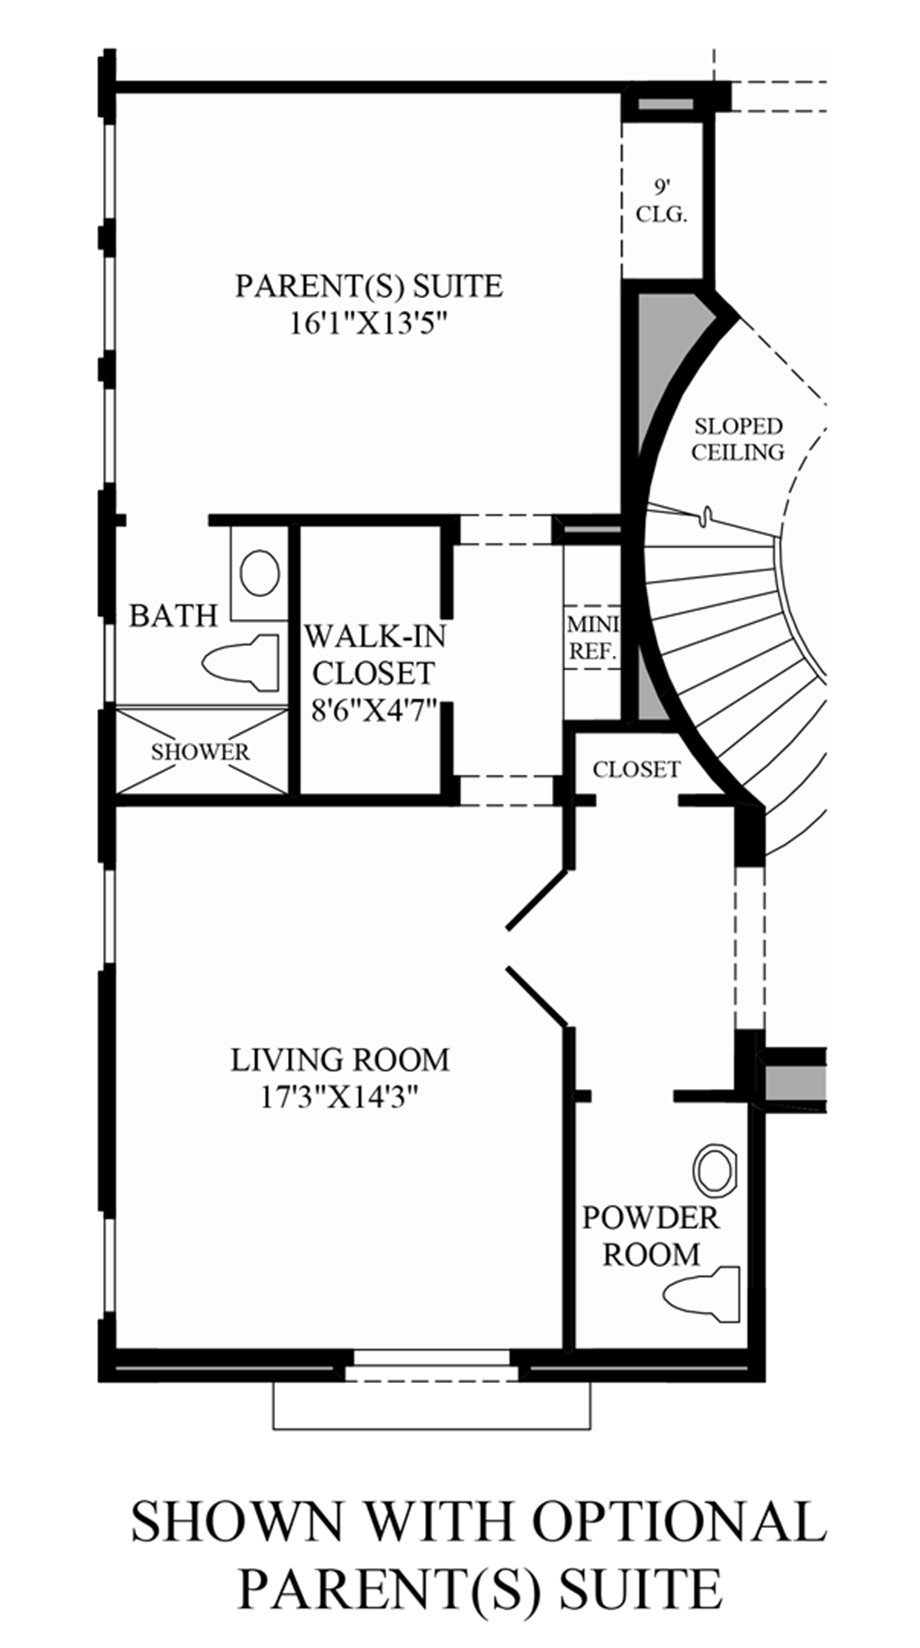 Optional Parents Suite Floor Plan